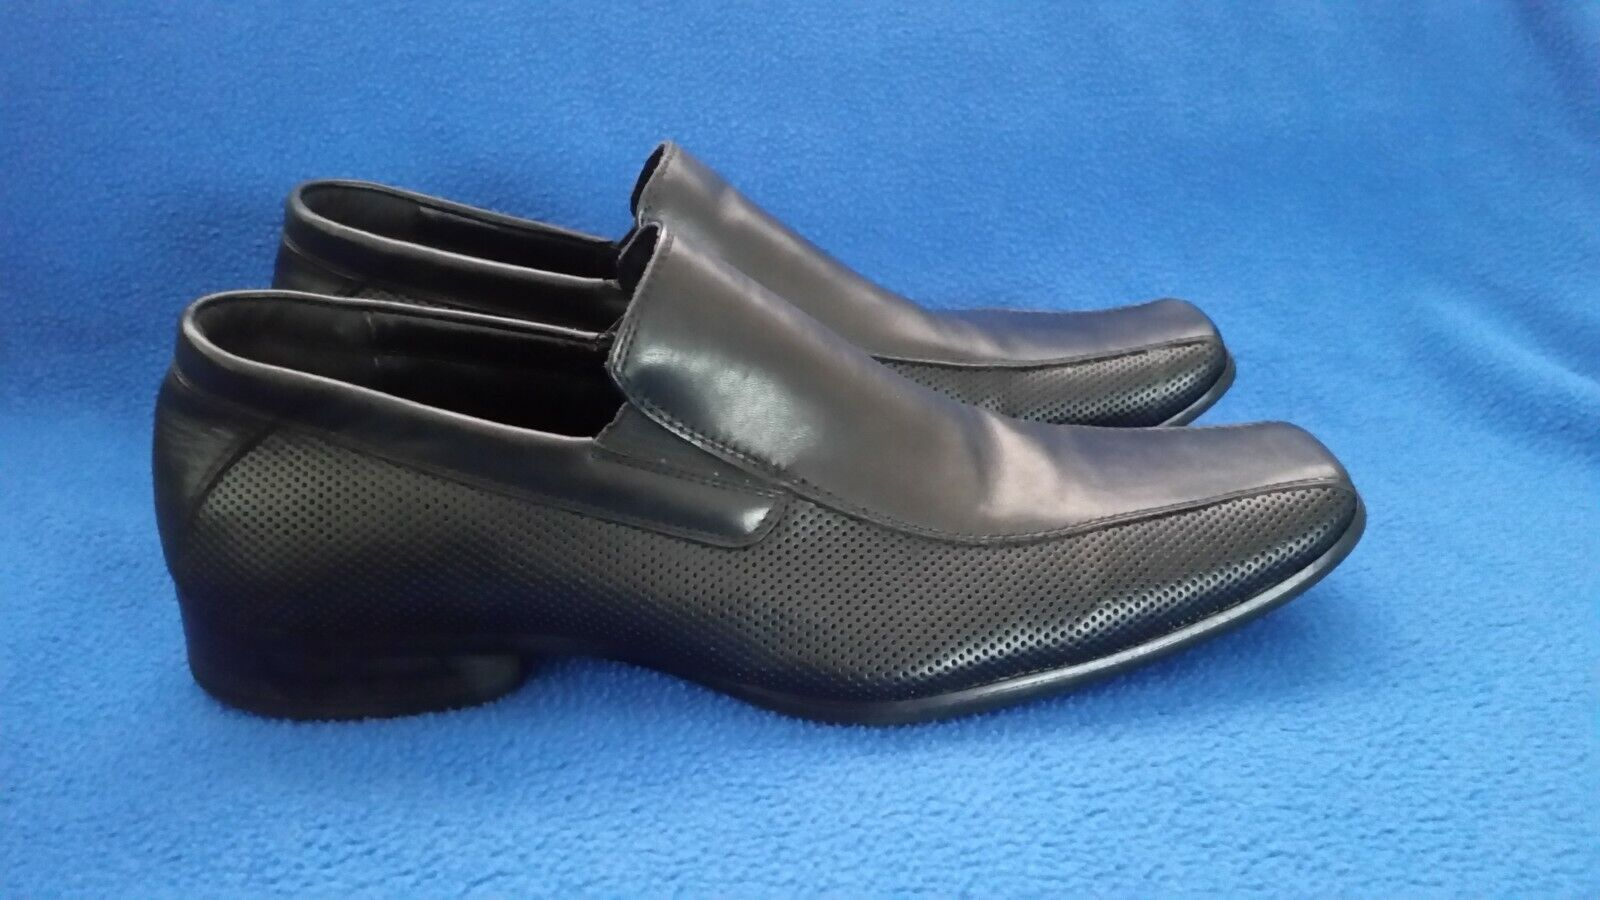 Kenneth Cole Reaction Men's Career Day Loafers Black Leather Dress Shoes Size 11